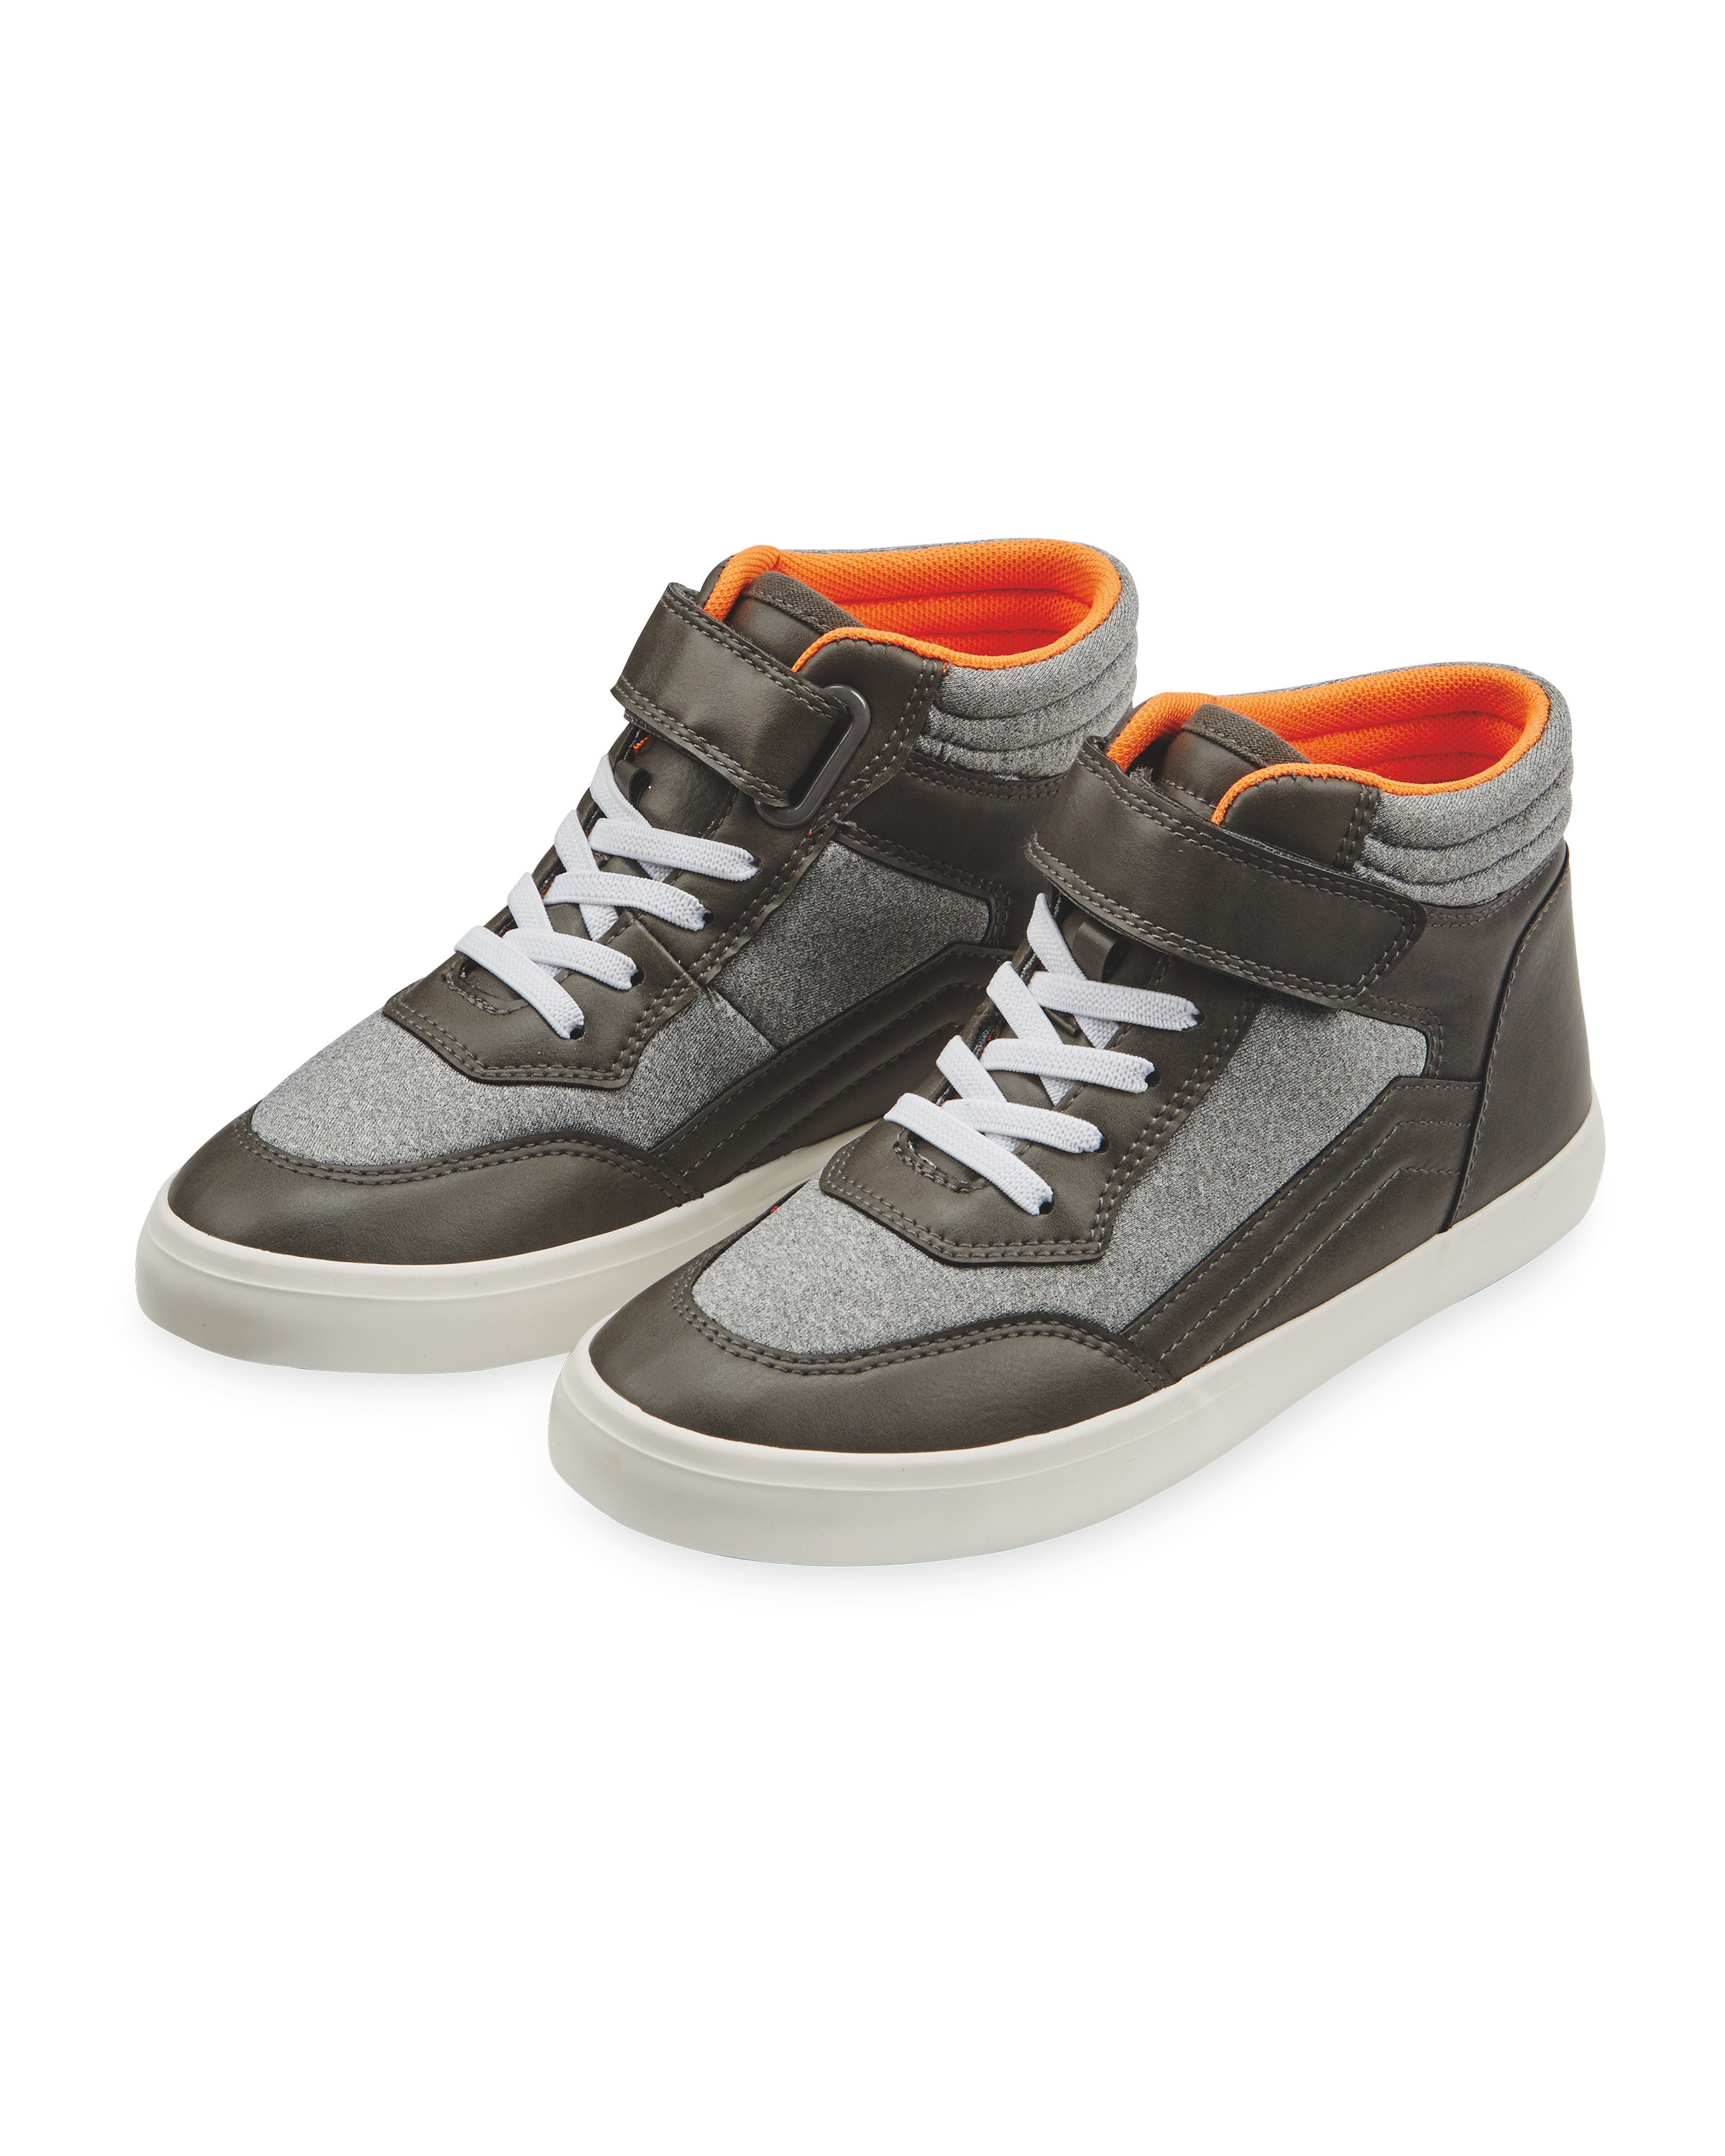 56db92b4937af Lily & Dan Grey Hi-Top Trainer - ALDI UK